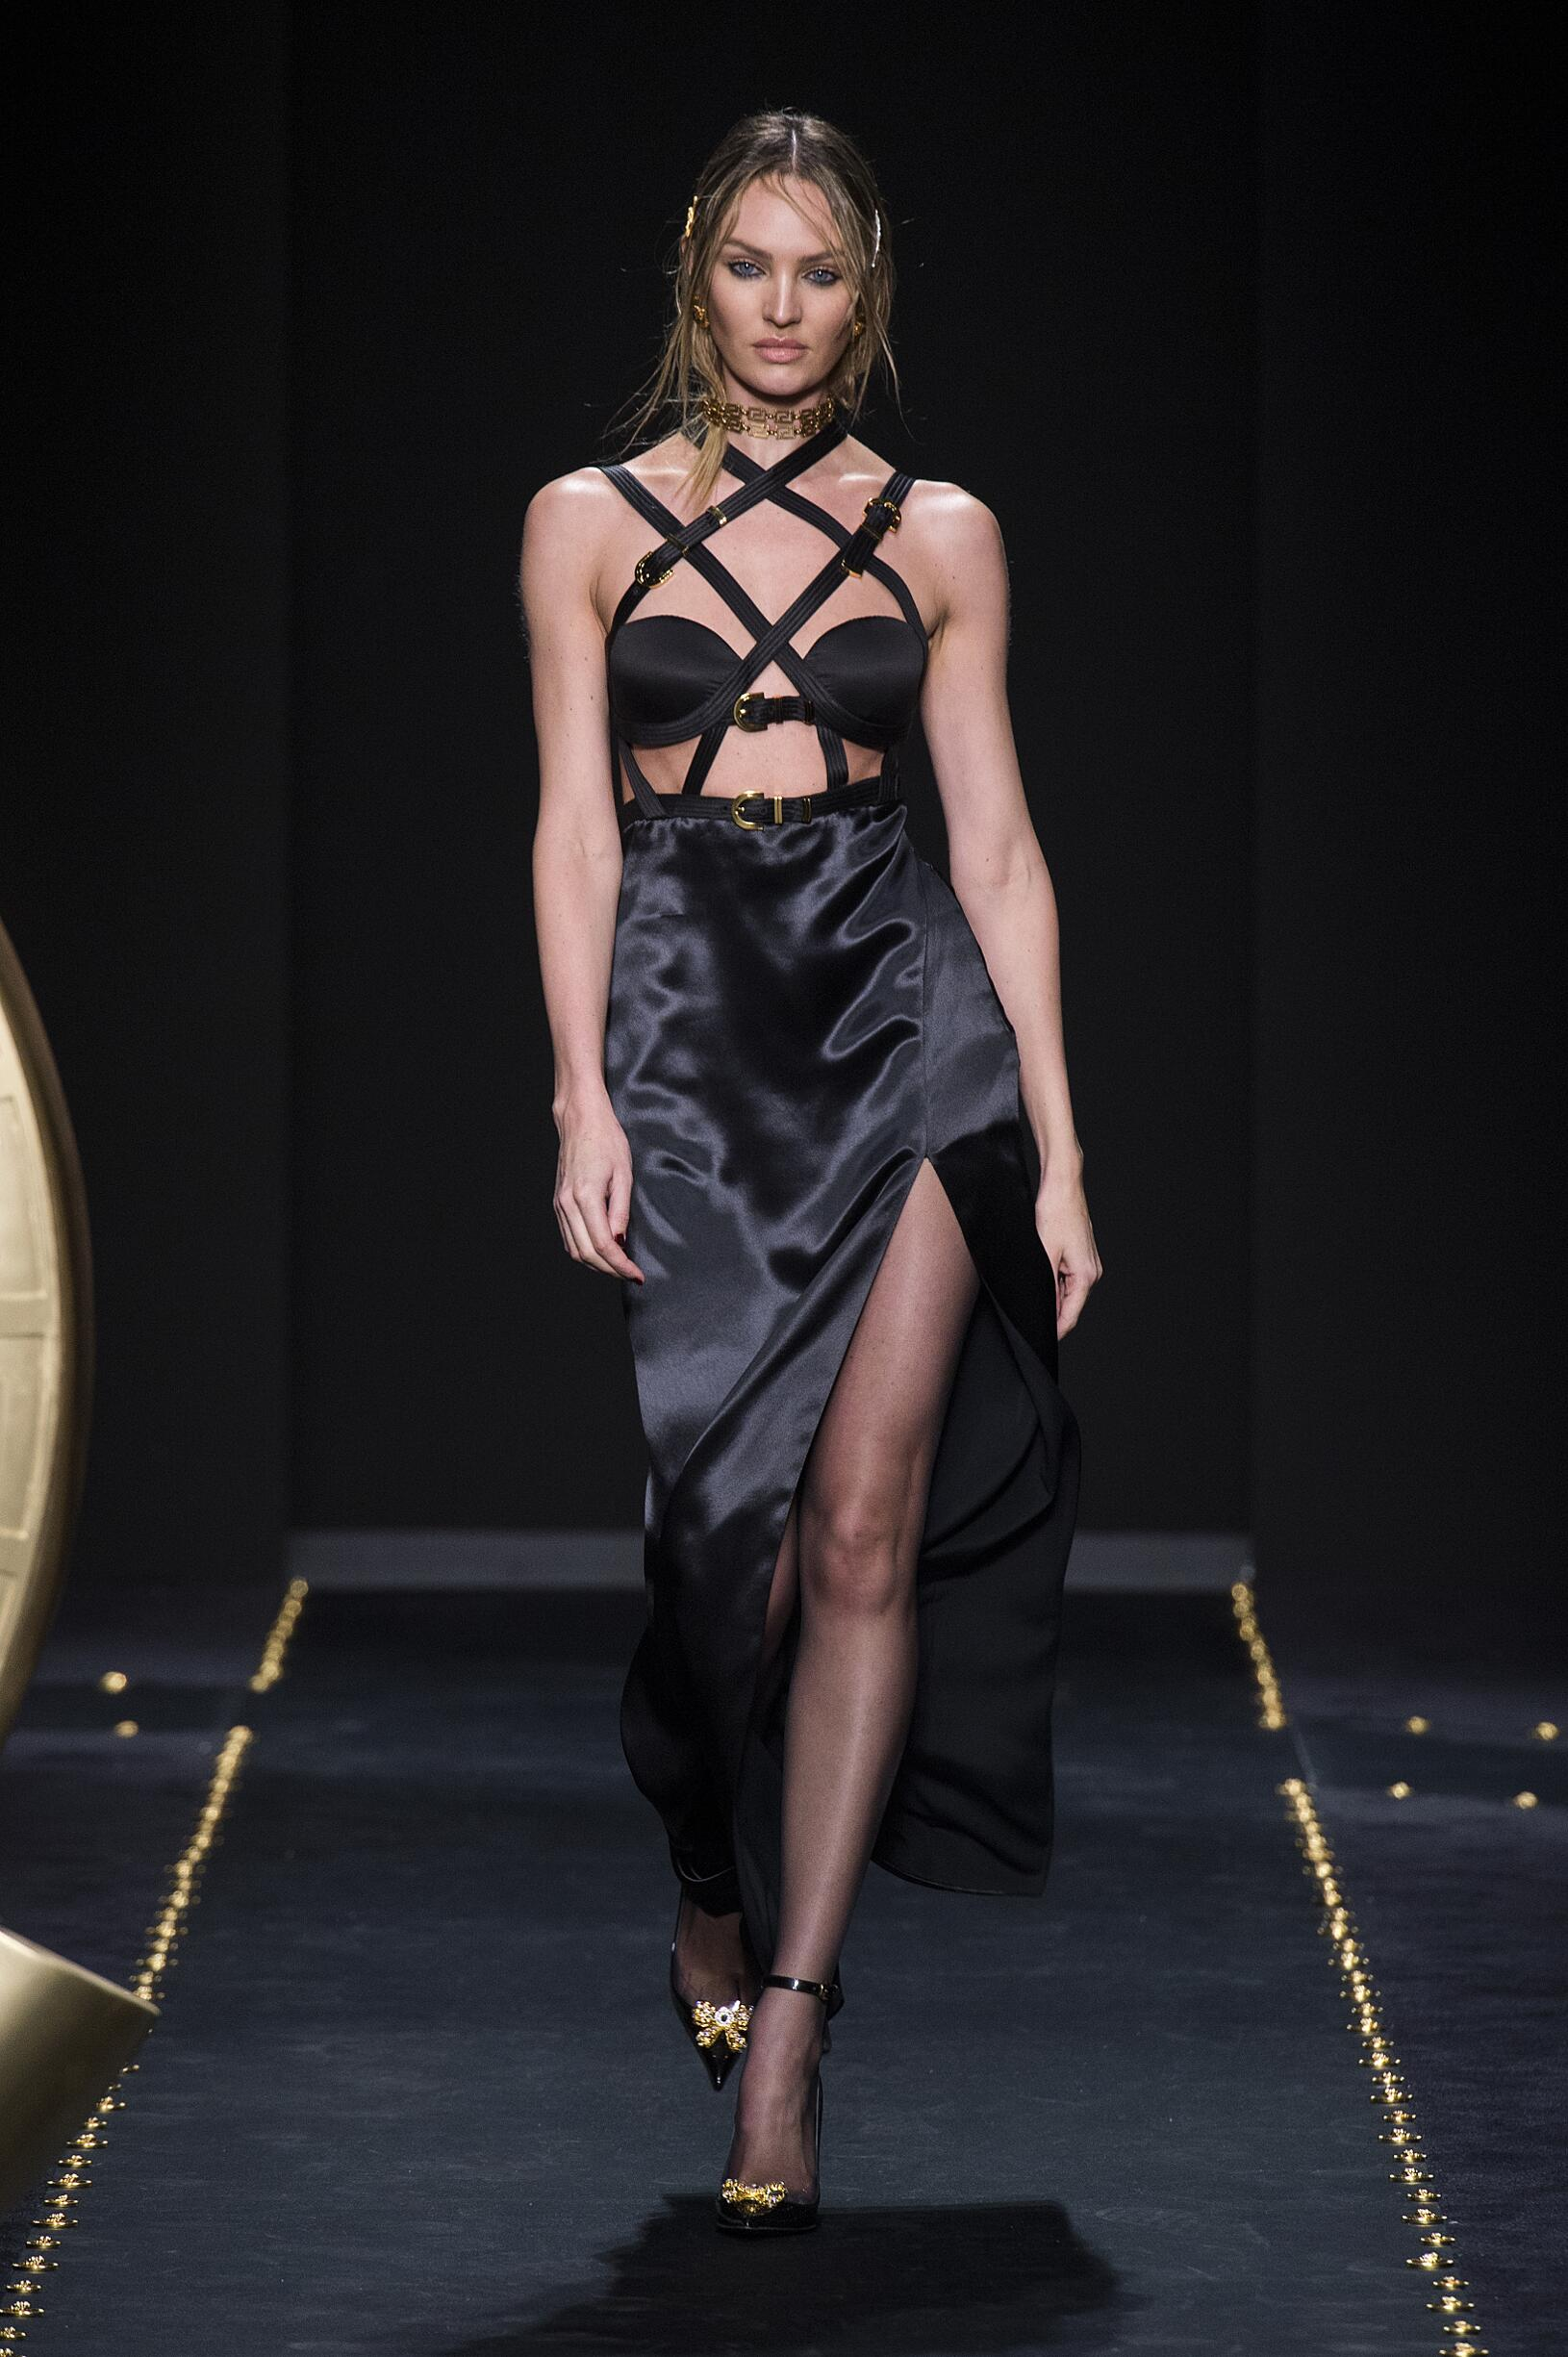 2019 Versace Winter Runway Show